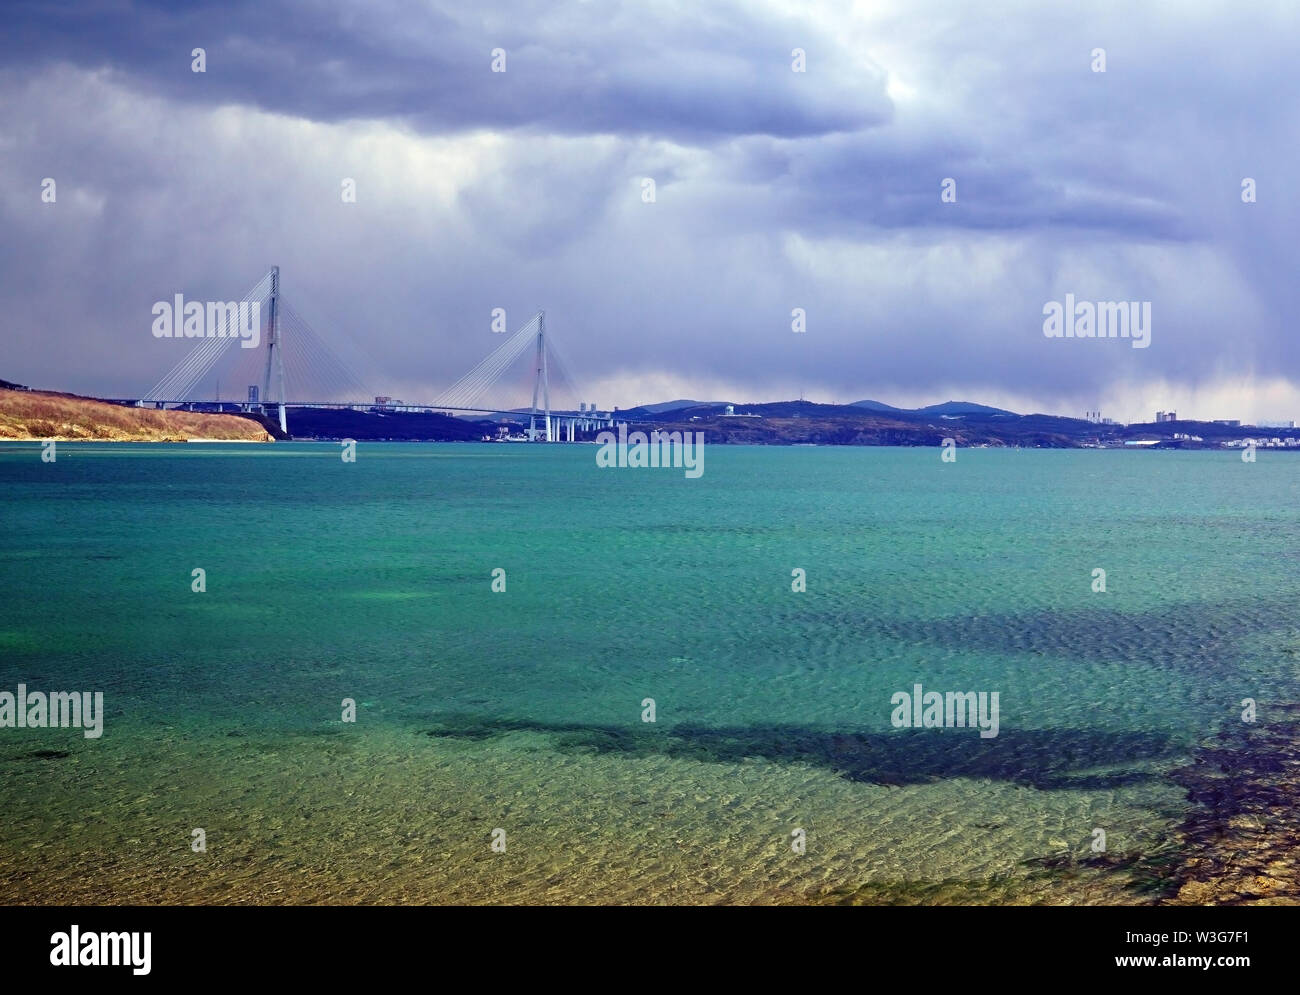 Turquoise sea lagoon on the background of the cable-stayed bridge. A storm begins above the bay, the sky is overcast. Russia, Vladivostok, island Russ - Stock Image